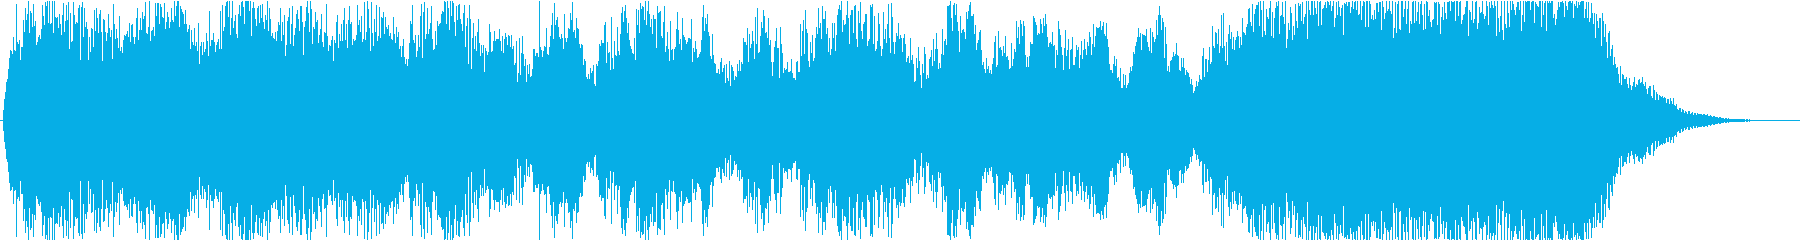 Orchestra, spectacular jingle's reproduced waveform